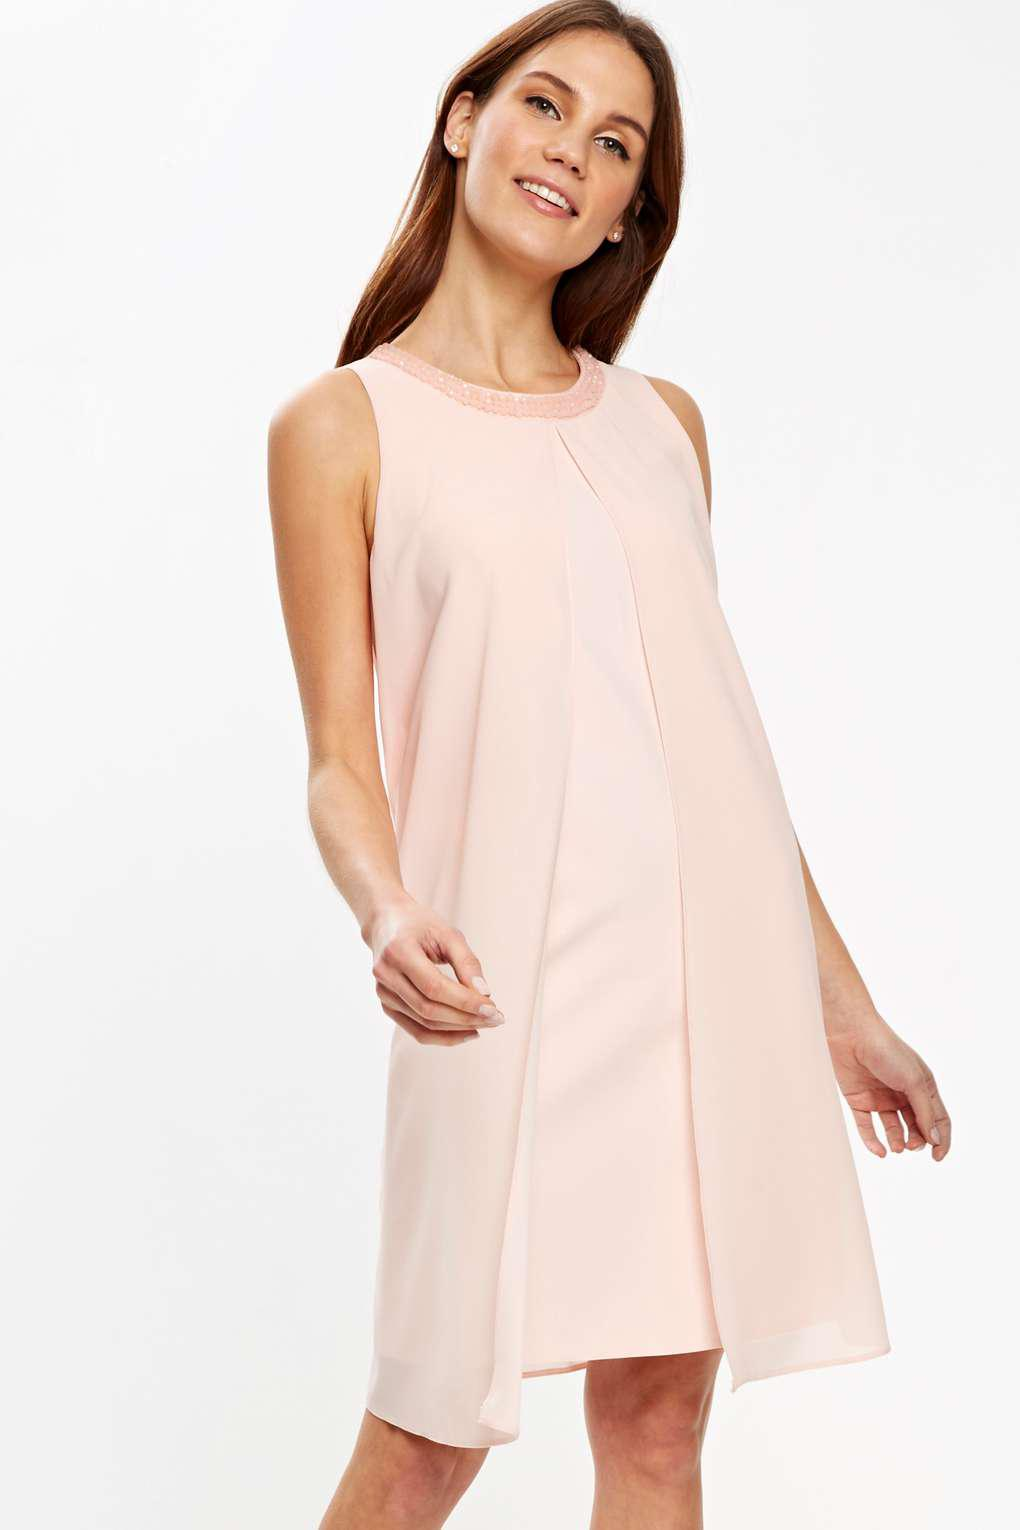 a095ead19d0 Wallis Petite Blush Embellished Dress in Pink - Lyst